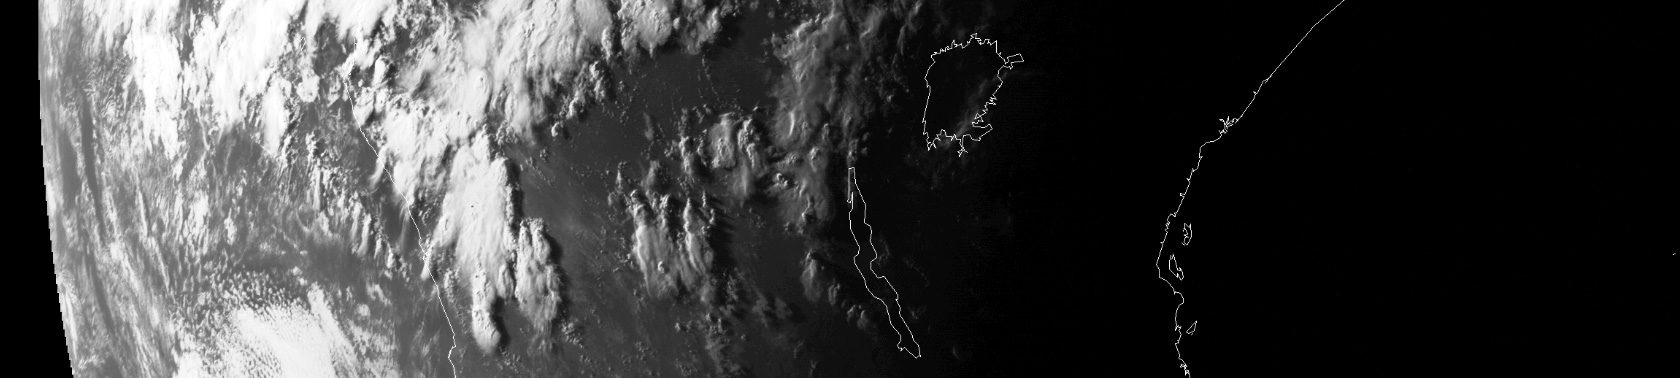 Meteosat visible channel image showing evening convection over central Africa, 16:00 UTC, 7 May 2016